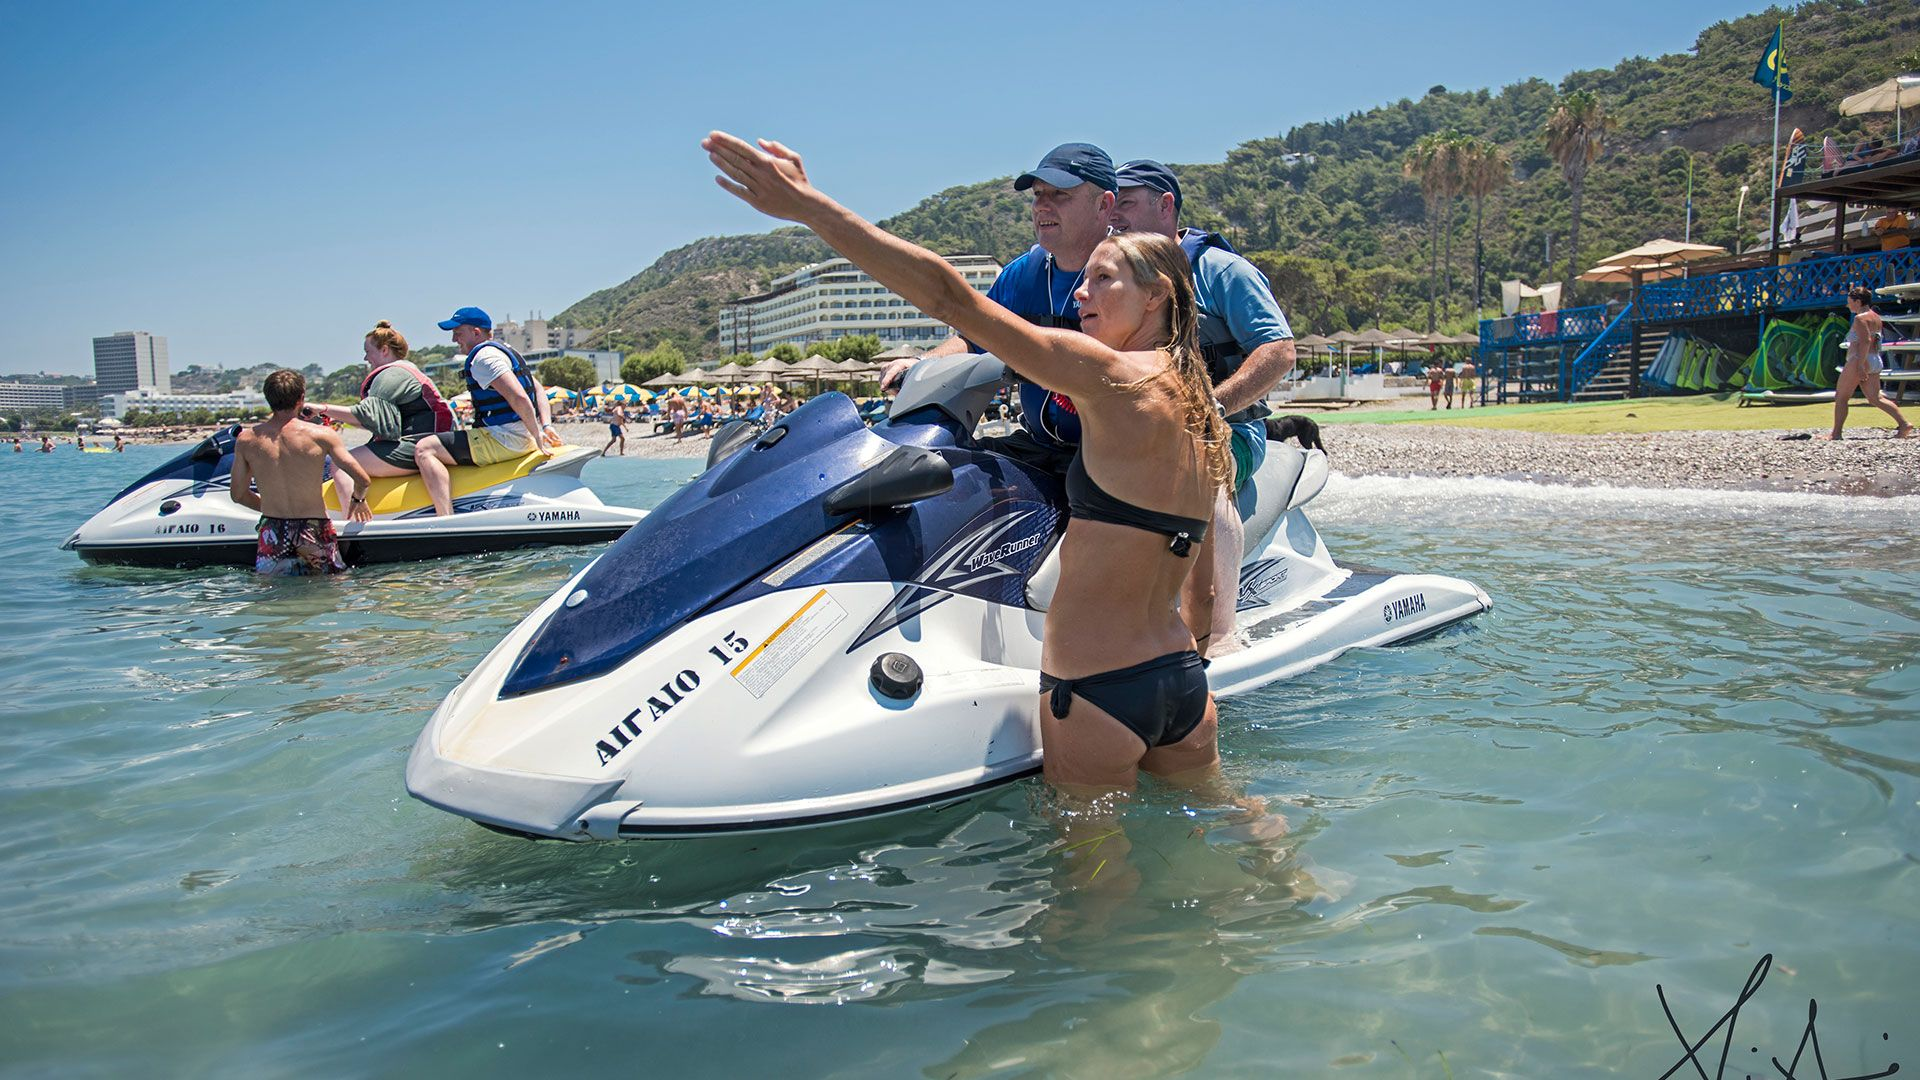 girl-jet-ski-windsurfersworld-windsurfing-ixia